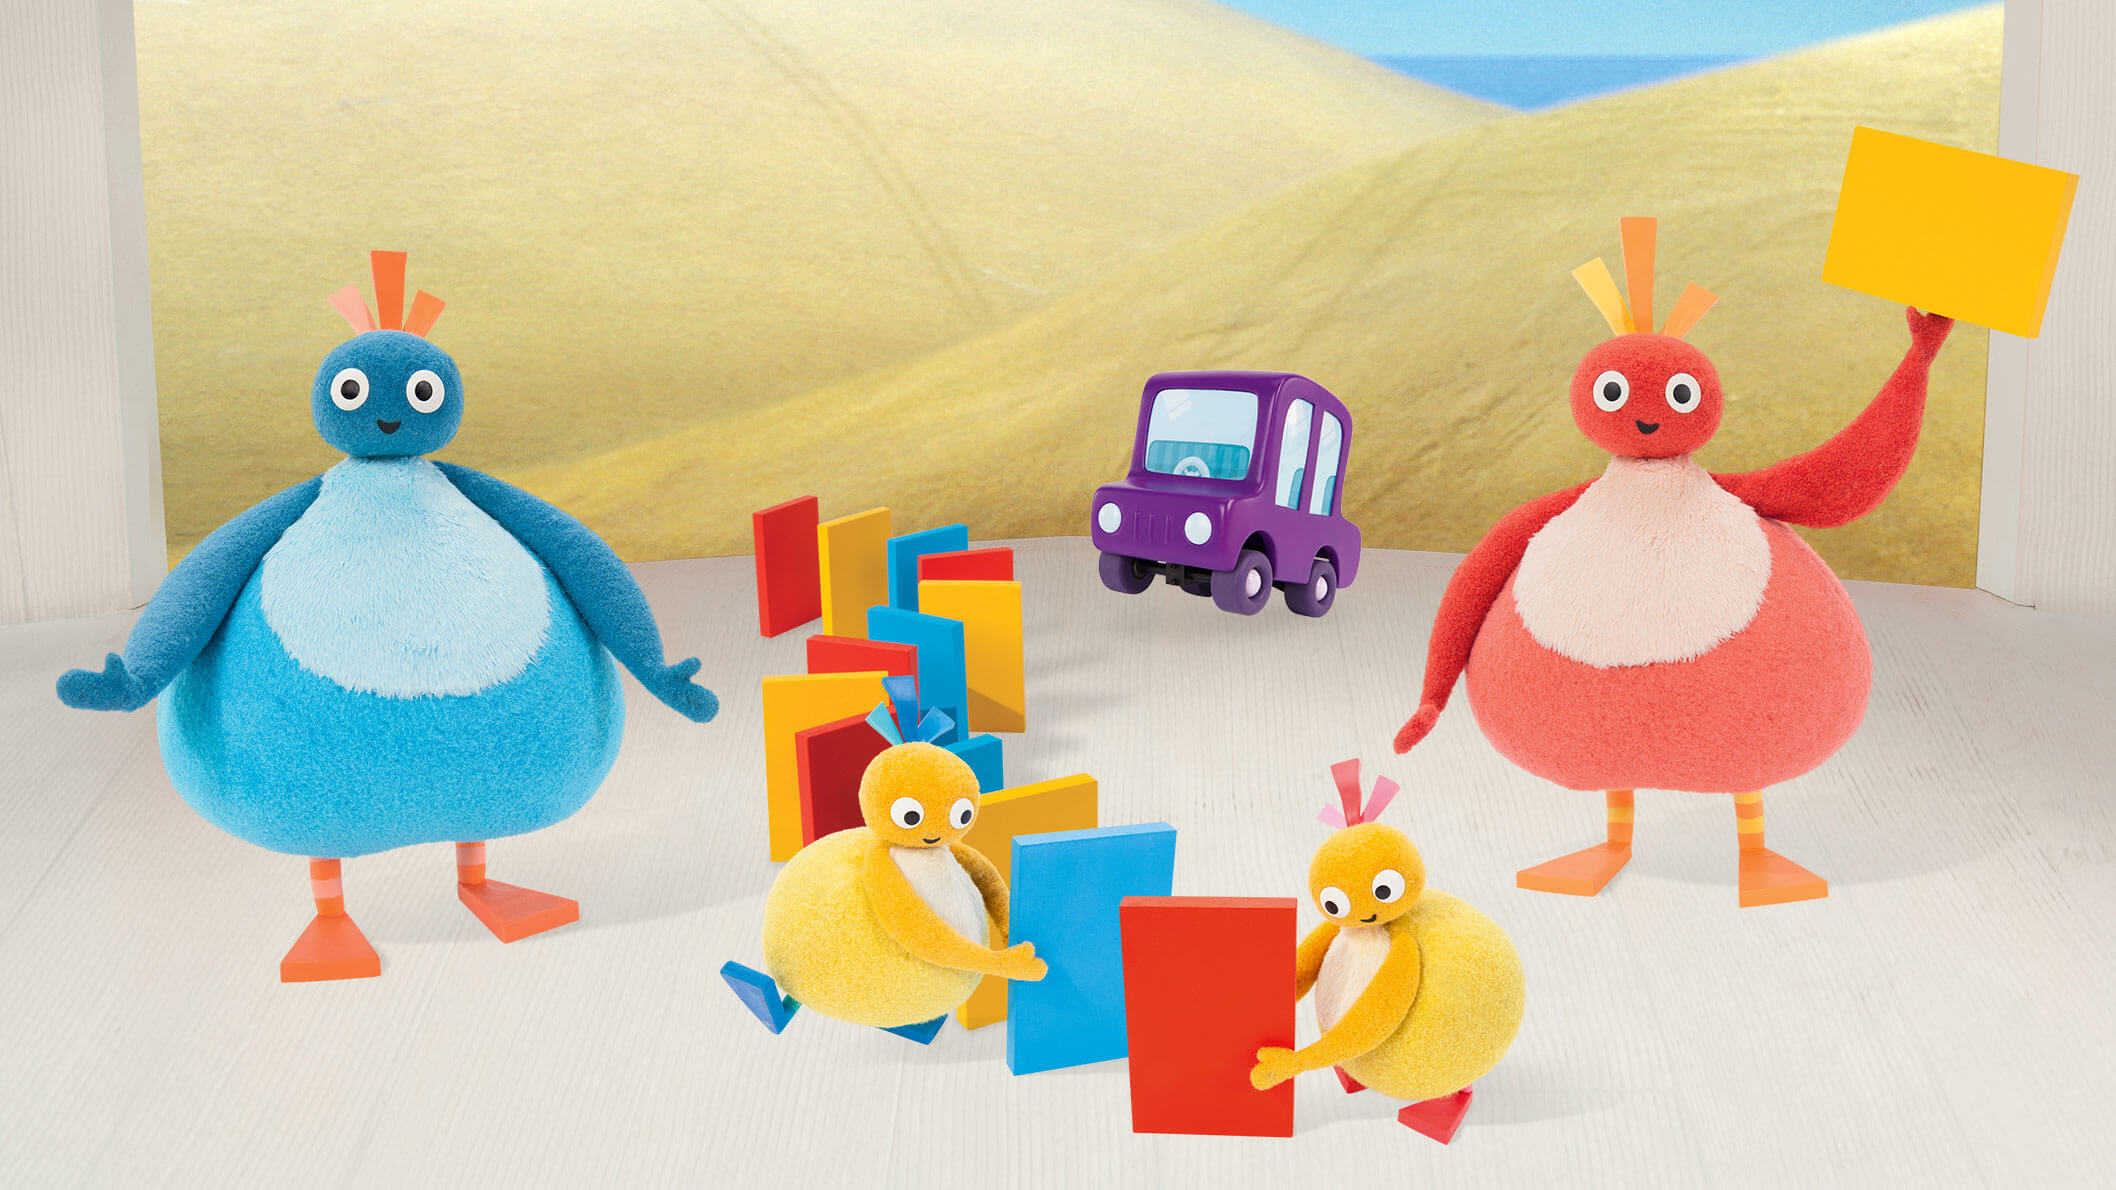 A blue round character, a red round character and two smaller, yellow characters in front of two beige hills and a purple car in the background.